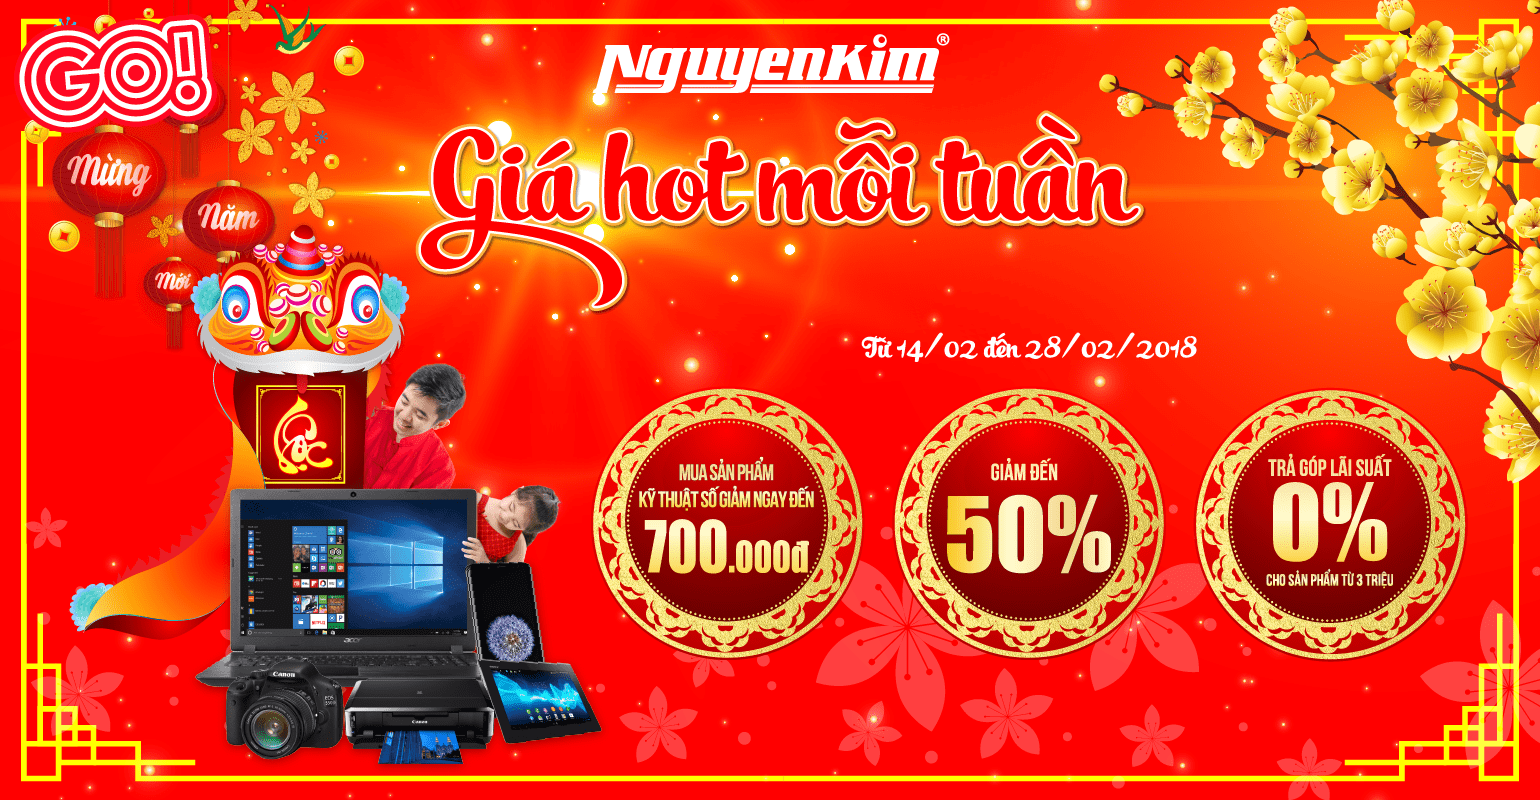 Nguyen Kim promotion at GO! Mỹ Tho – Weekly hot prices